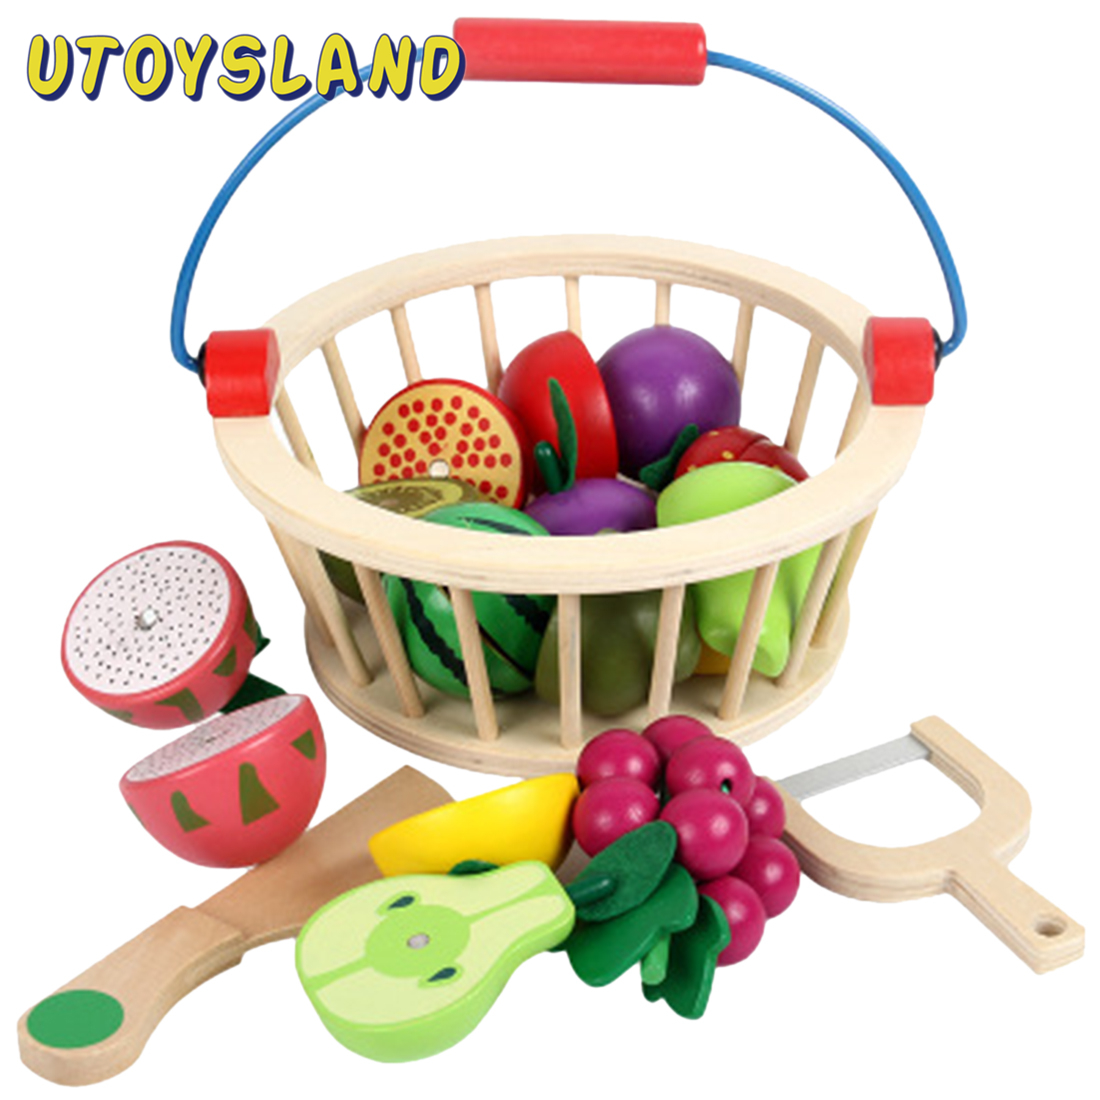 12Pcs Magnetic Wooden Fruit And Vegetable Combination Cutting Toy Set Children Play & Pretend Simulation Round Basket Fruit Kits